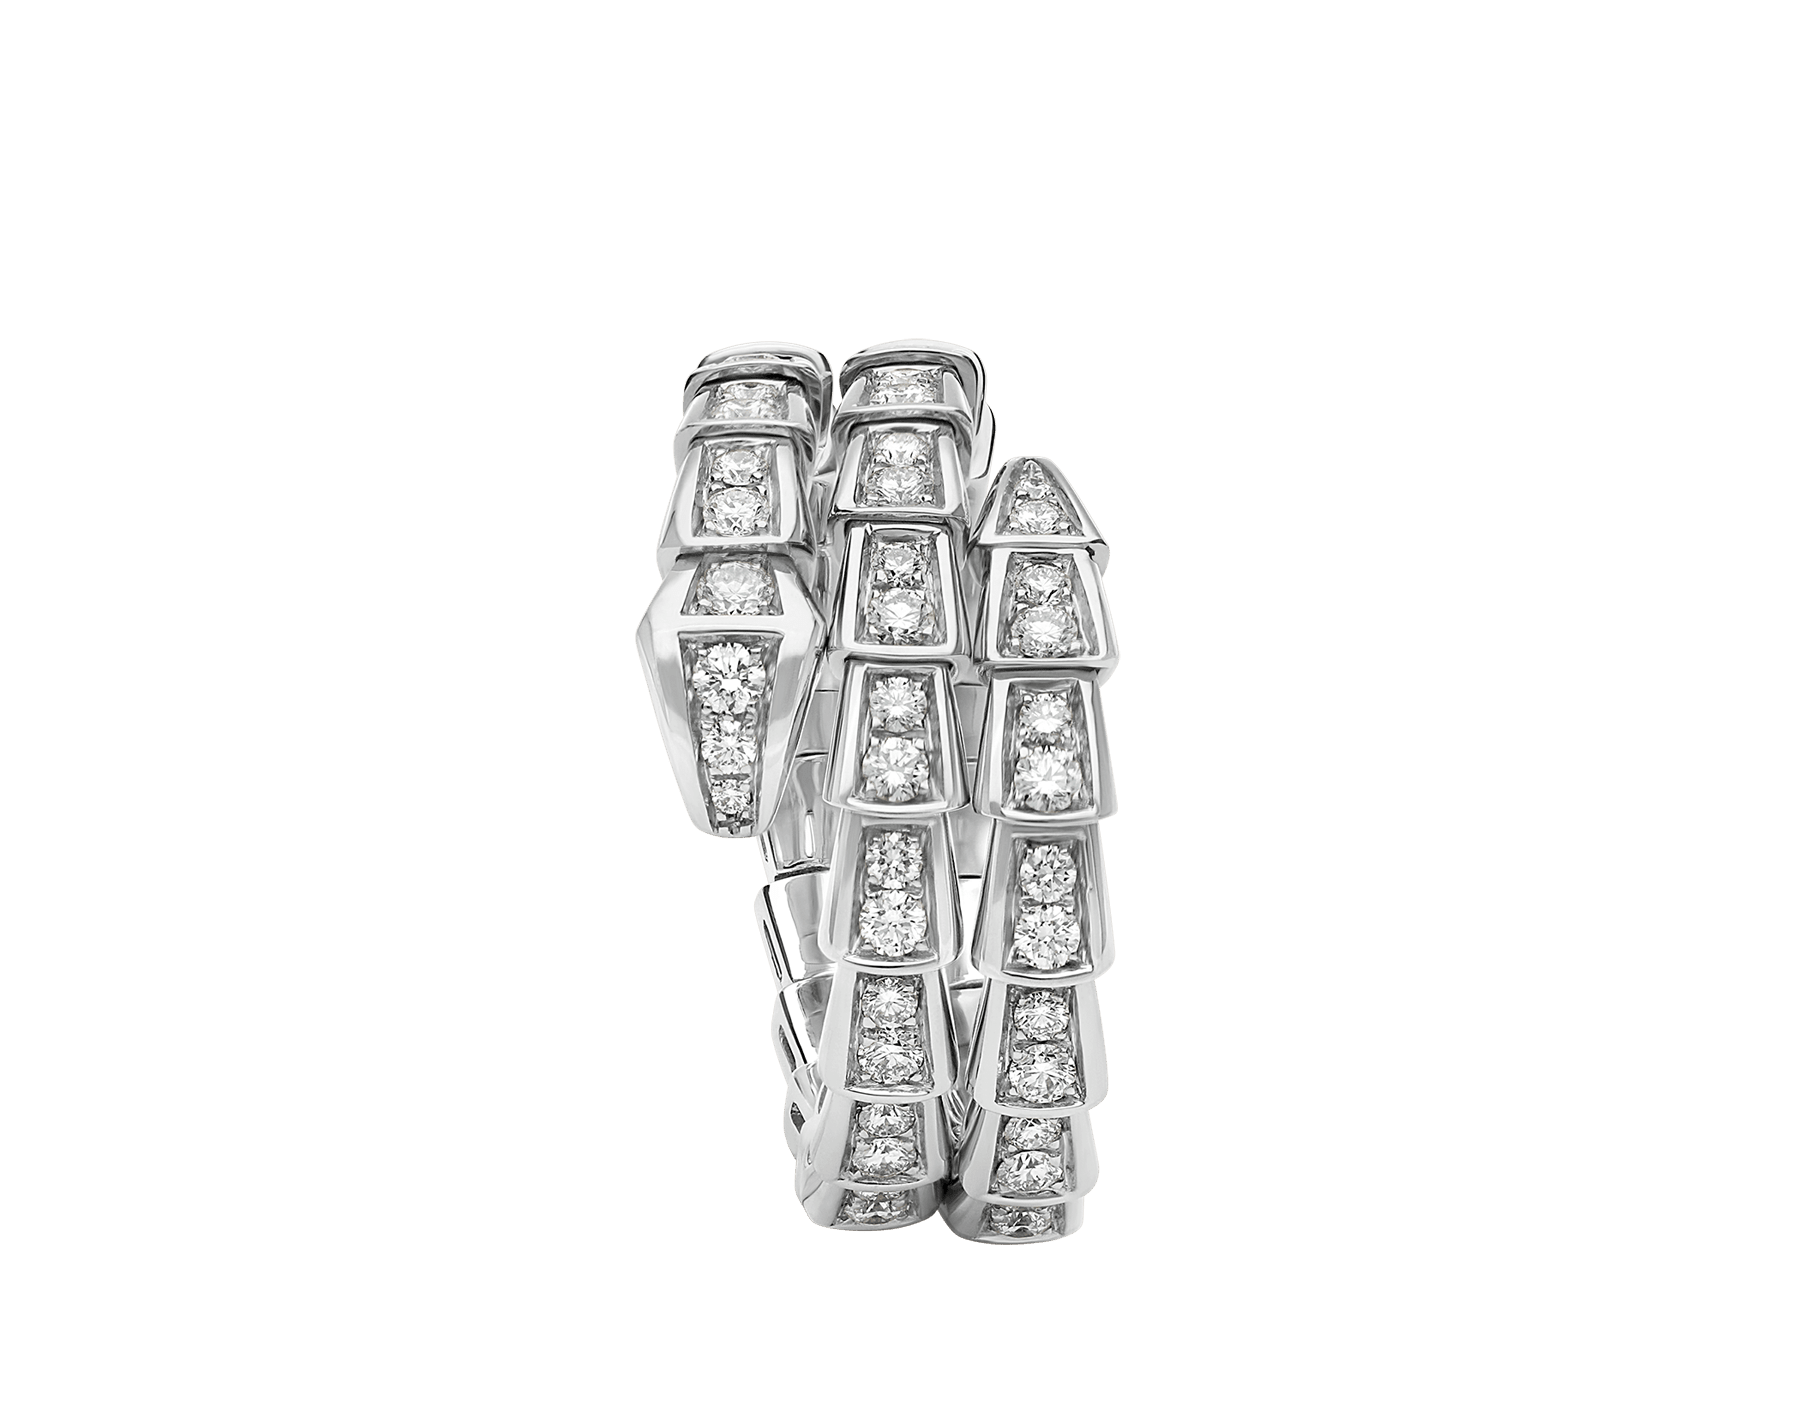 Serpenti Viper two-coil 18 kt white gold ring, set with pavé diamonds AN858793 image 2